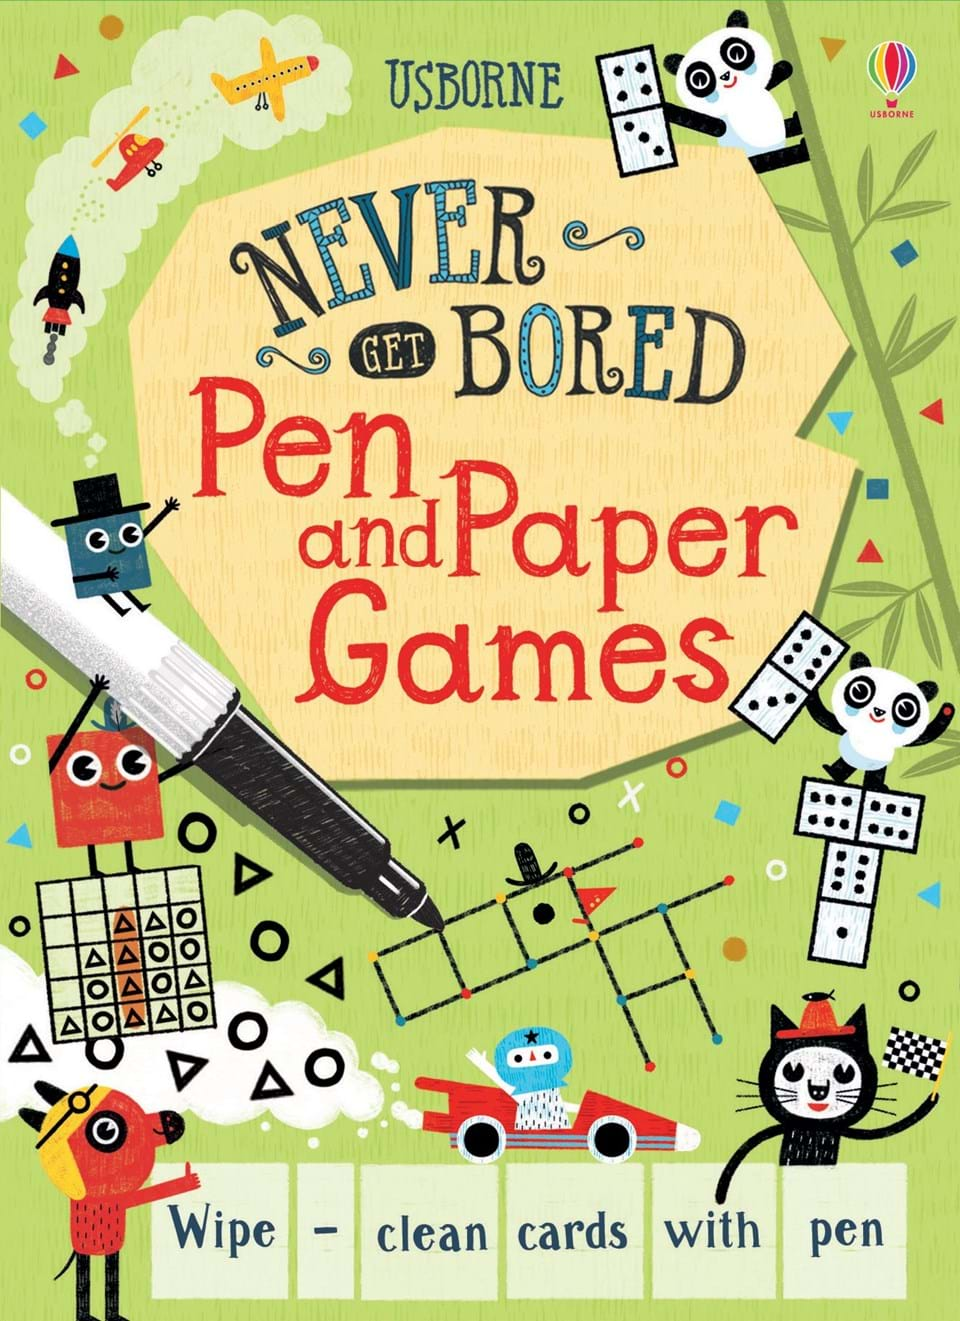 Never get bored - Pen and paper games